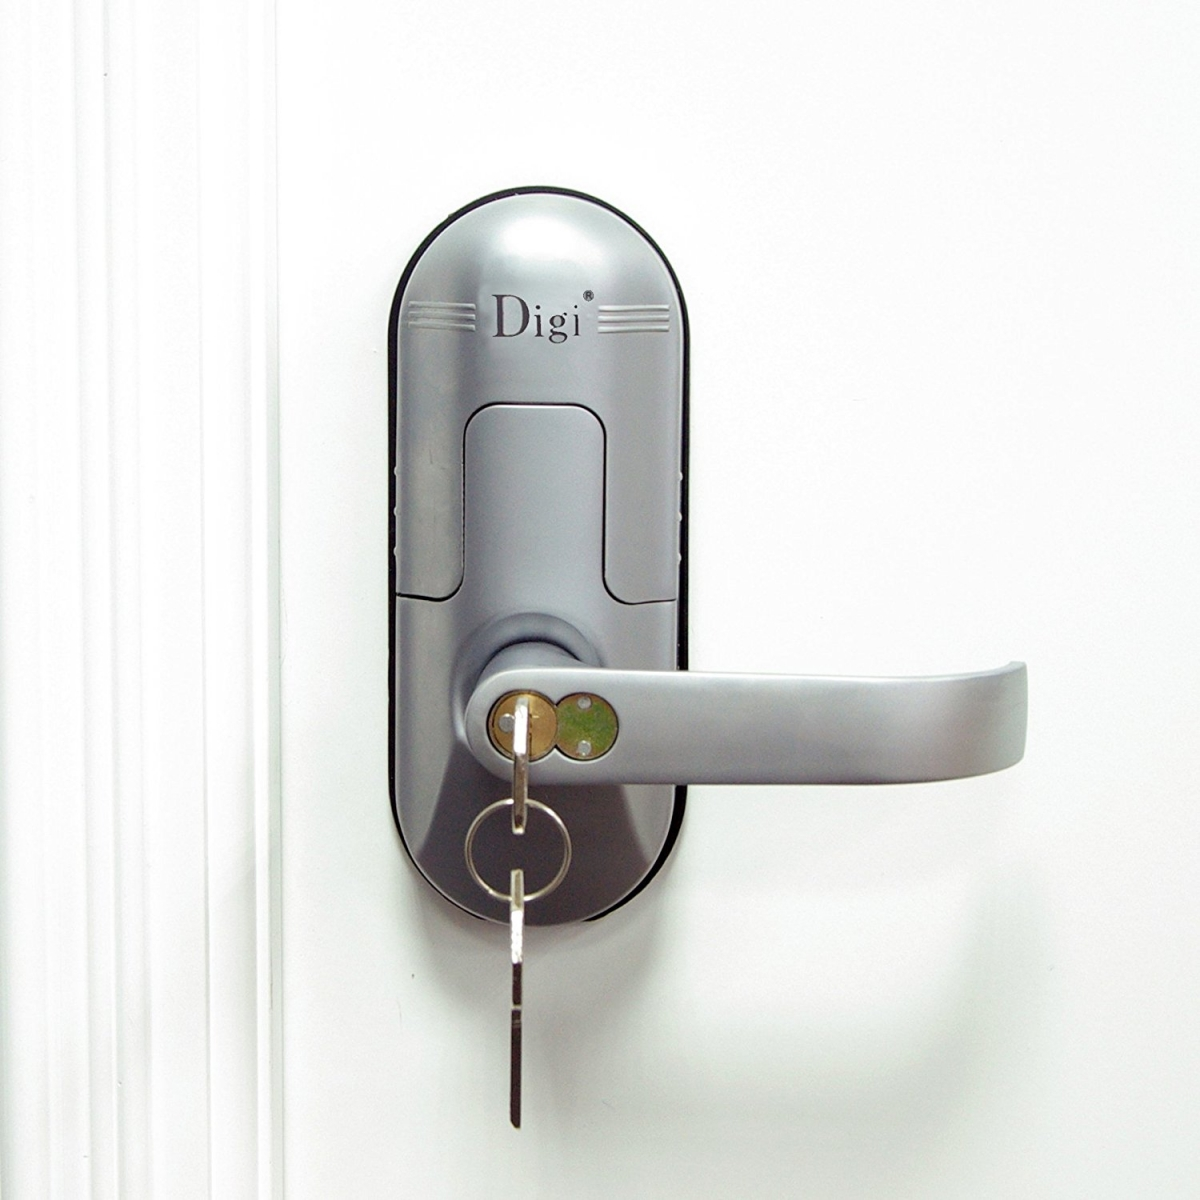 Review Assa Abloy 6600 98 Biometric Fingerprint Keyless